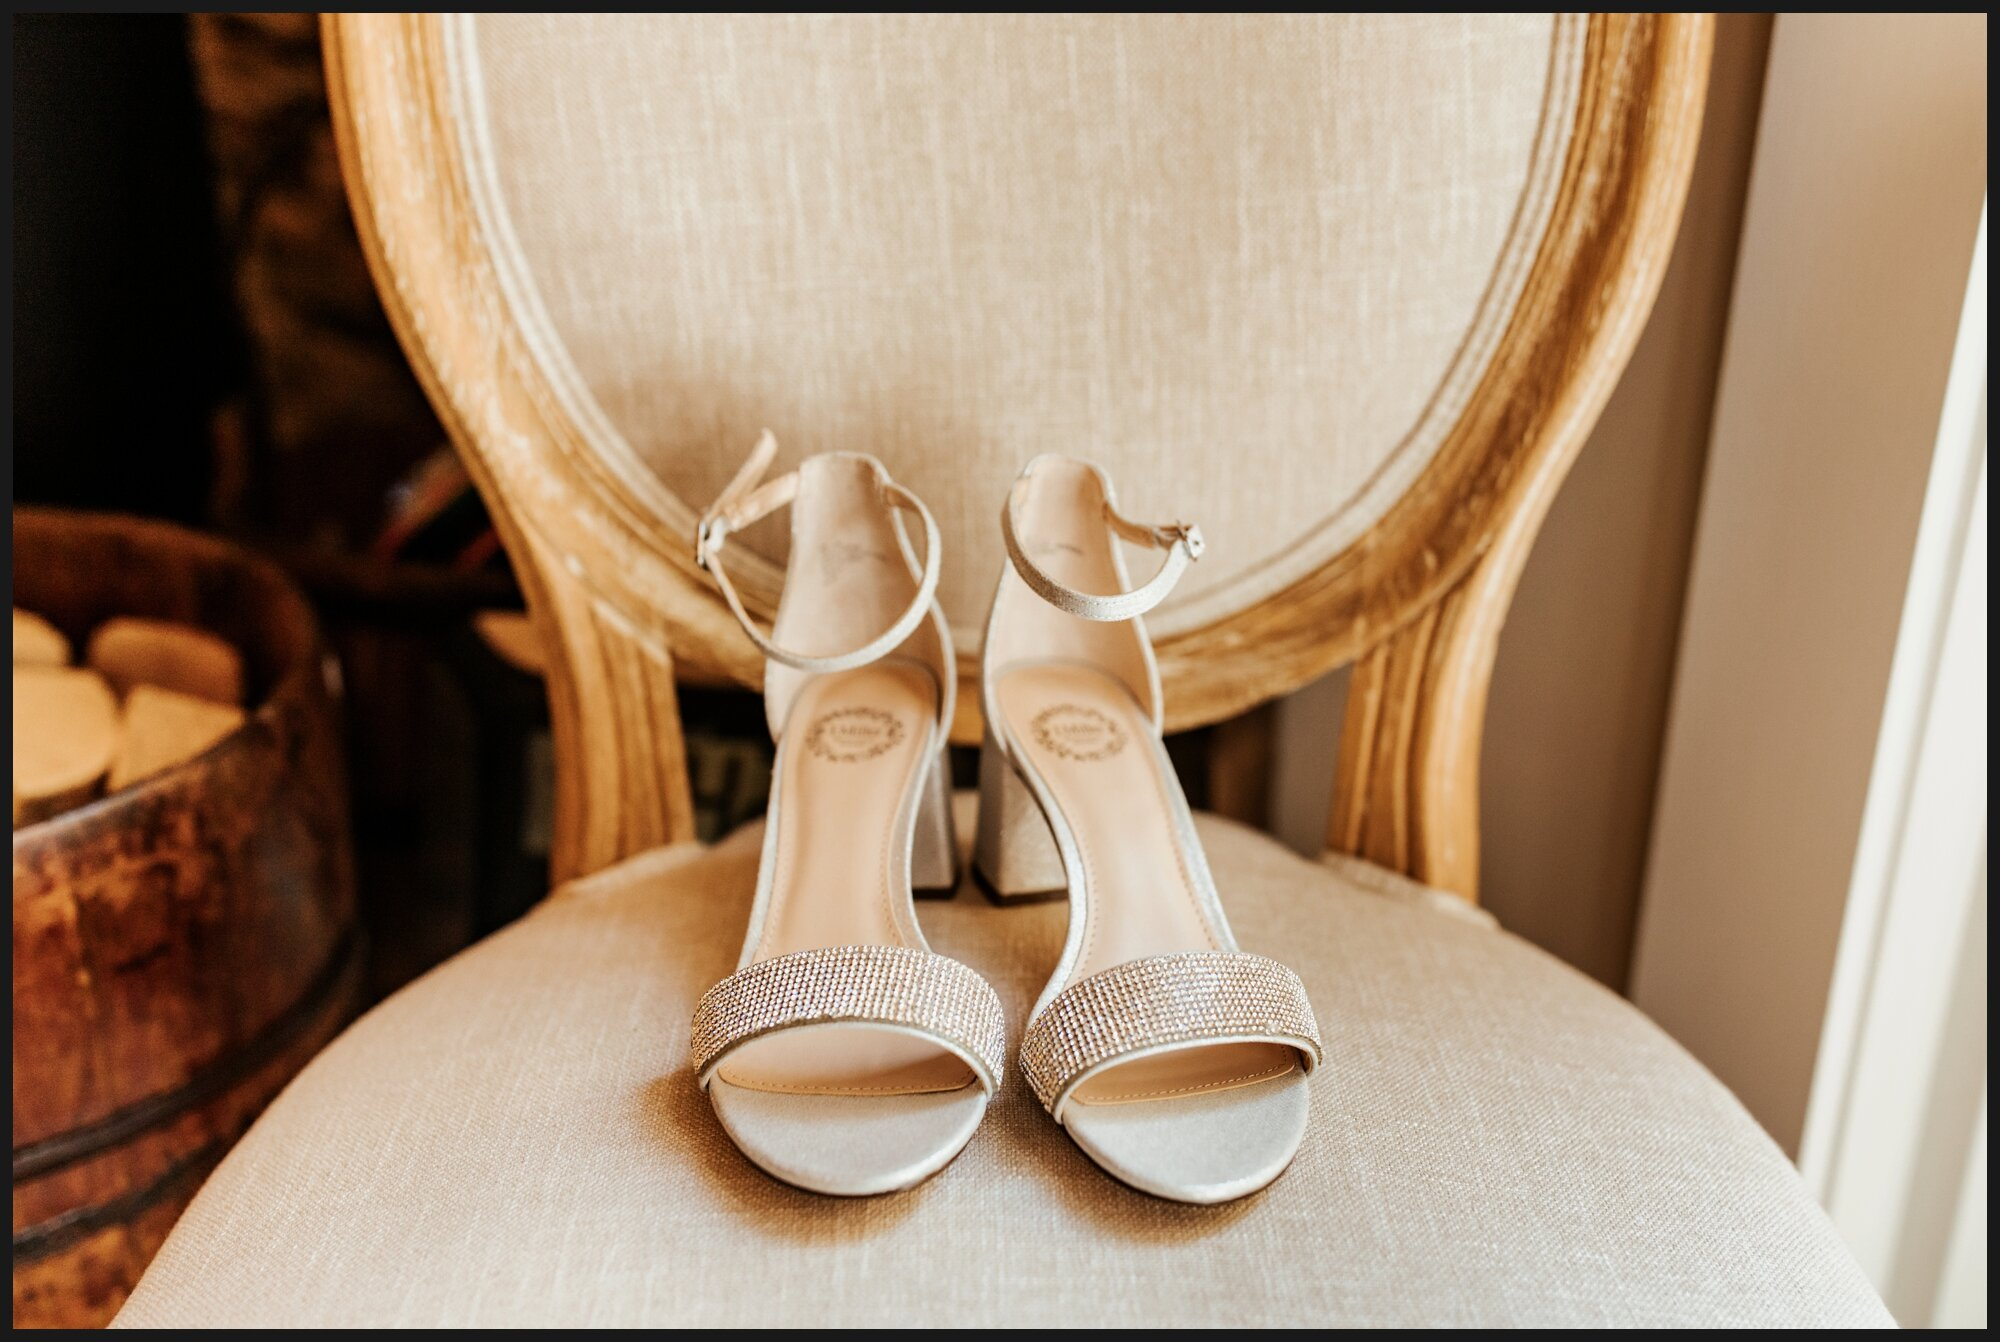 Orlando-Wedding-Photographer-destination-wedding-photographer-florida-wedding-photographer-hawaii-wedding-photographer_0787.jpg